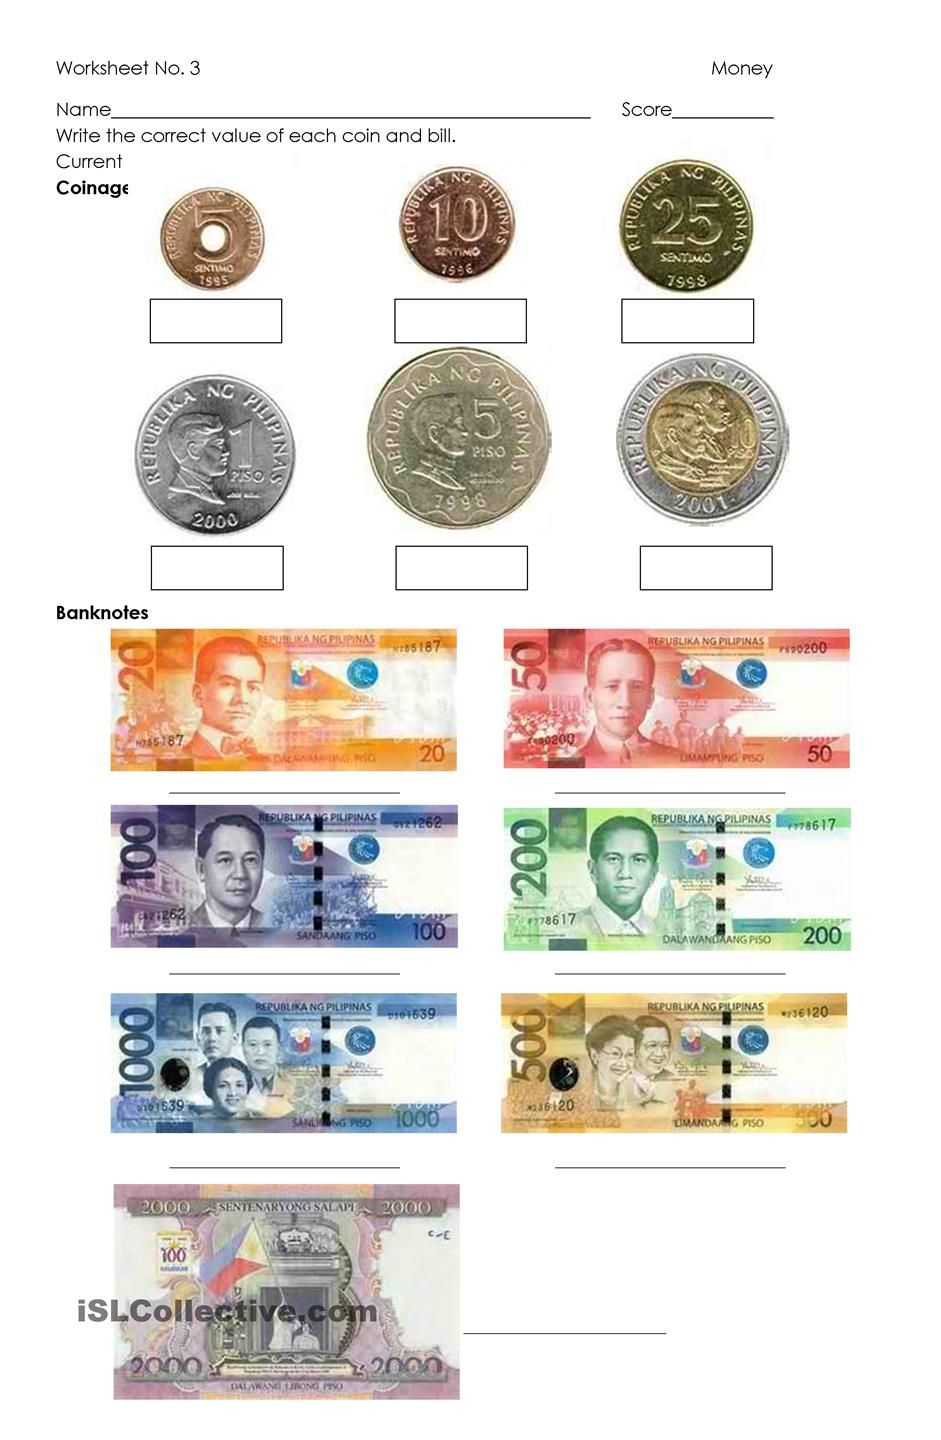 Money - Philippine Coins And Bills | Class Ideas | Money Worksheets | Printable Paper Money Worksheets